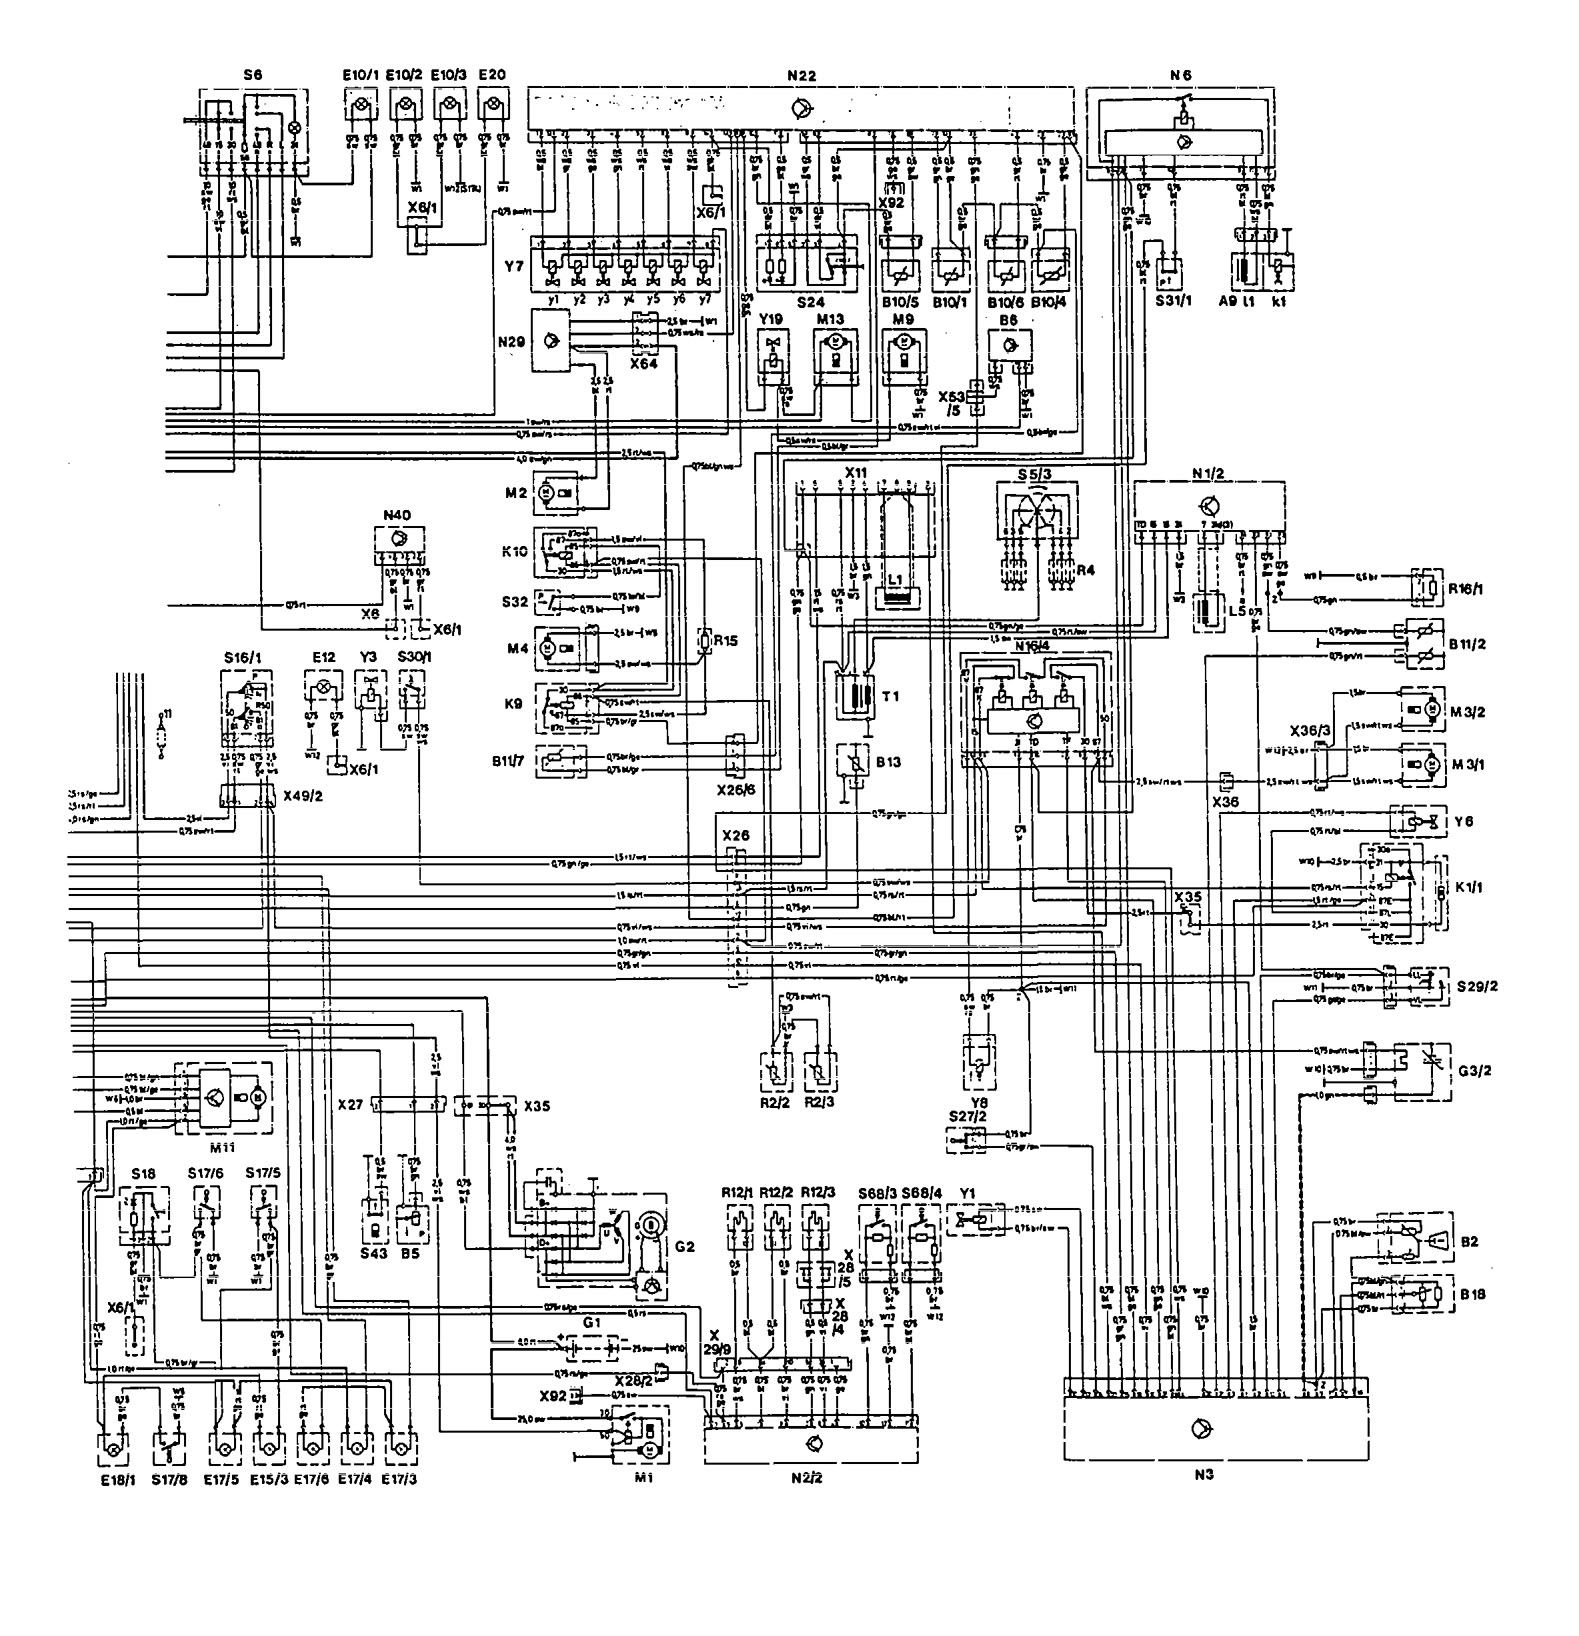 1997 Mercedes E420 Fuse Diagram Diagram Base Website Fuse Diagram -  VENNDIAGRAMMAKER.AISC-NET.ITaisc